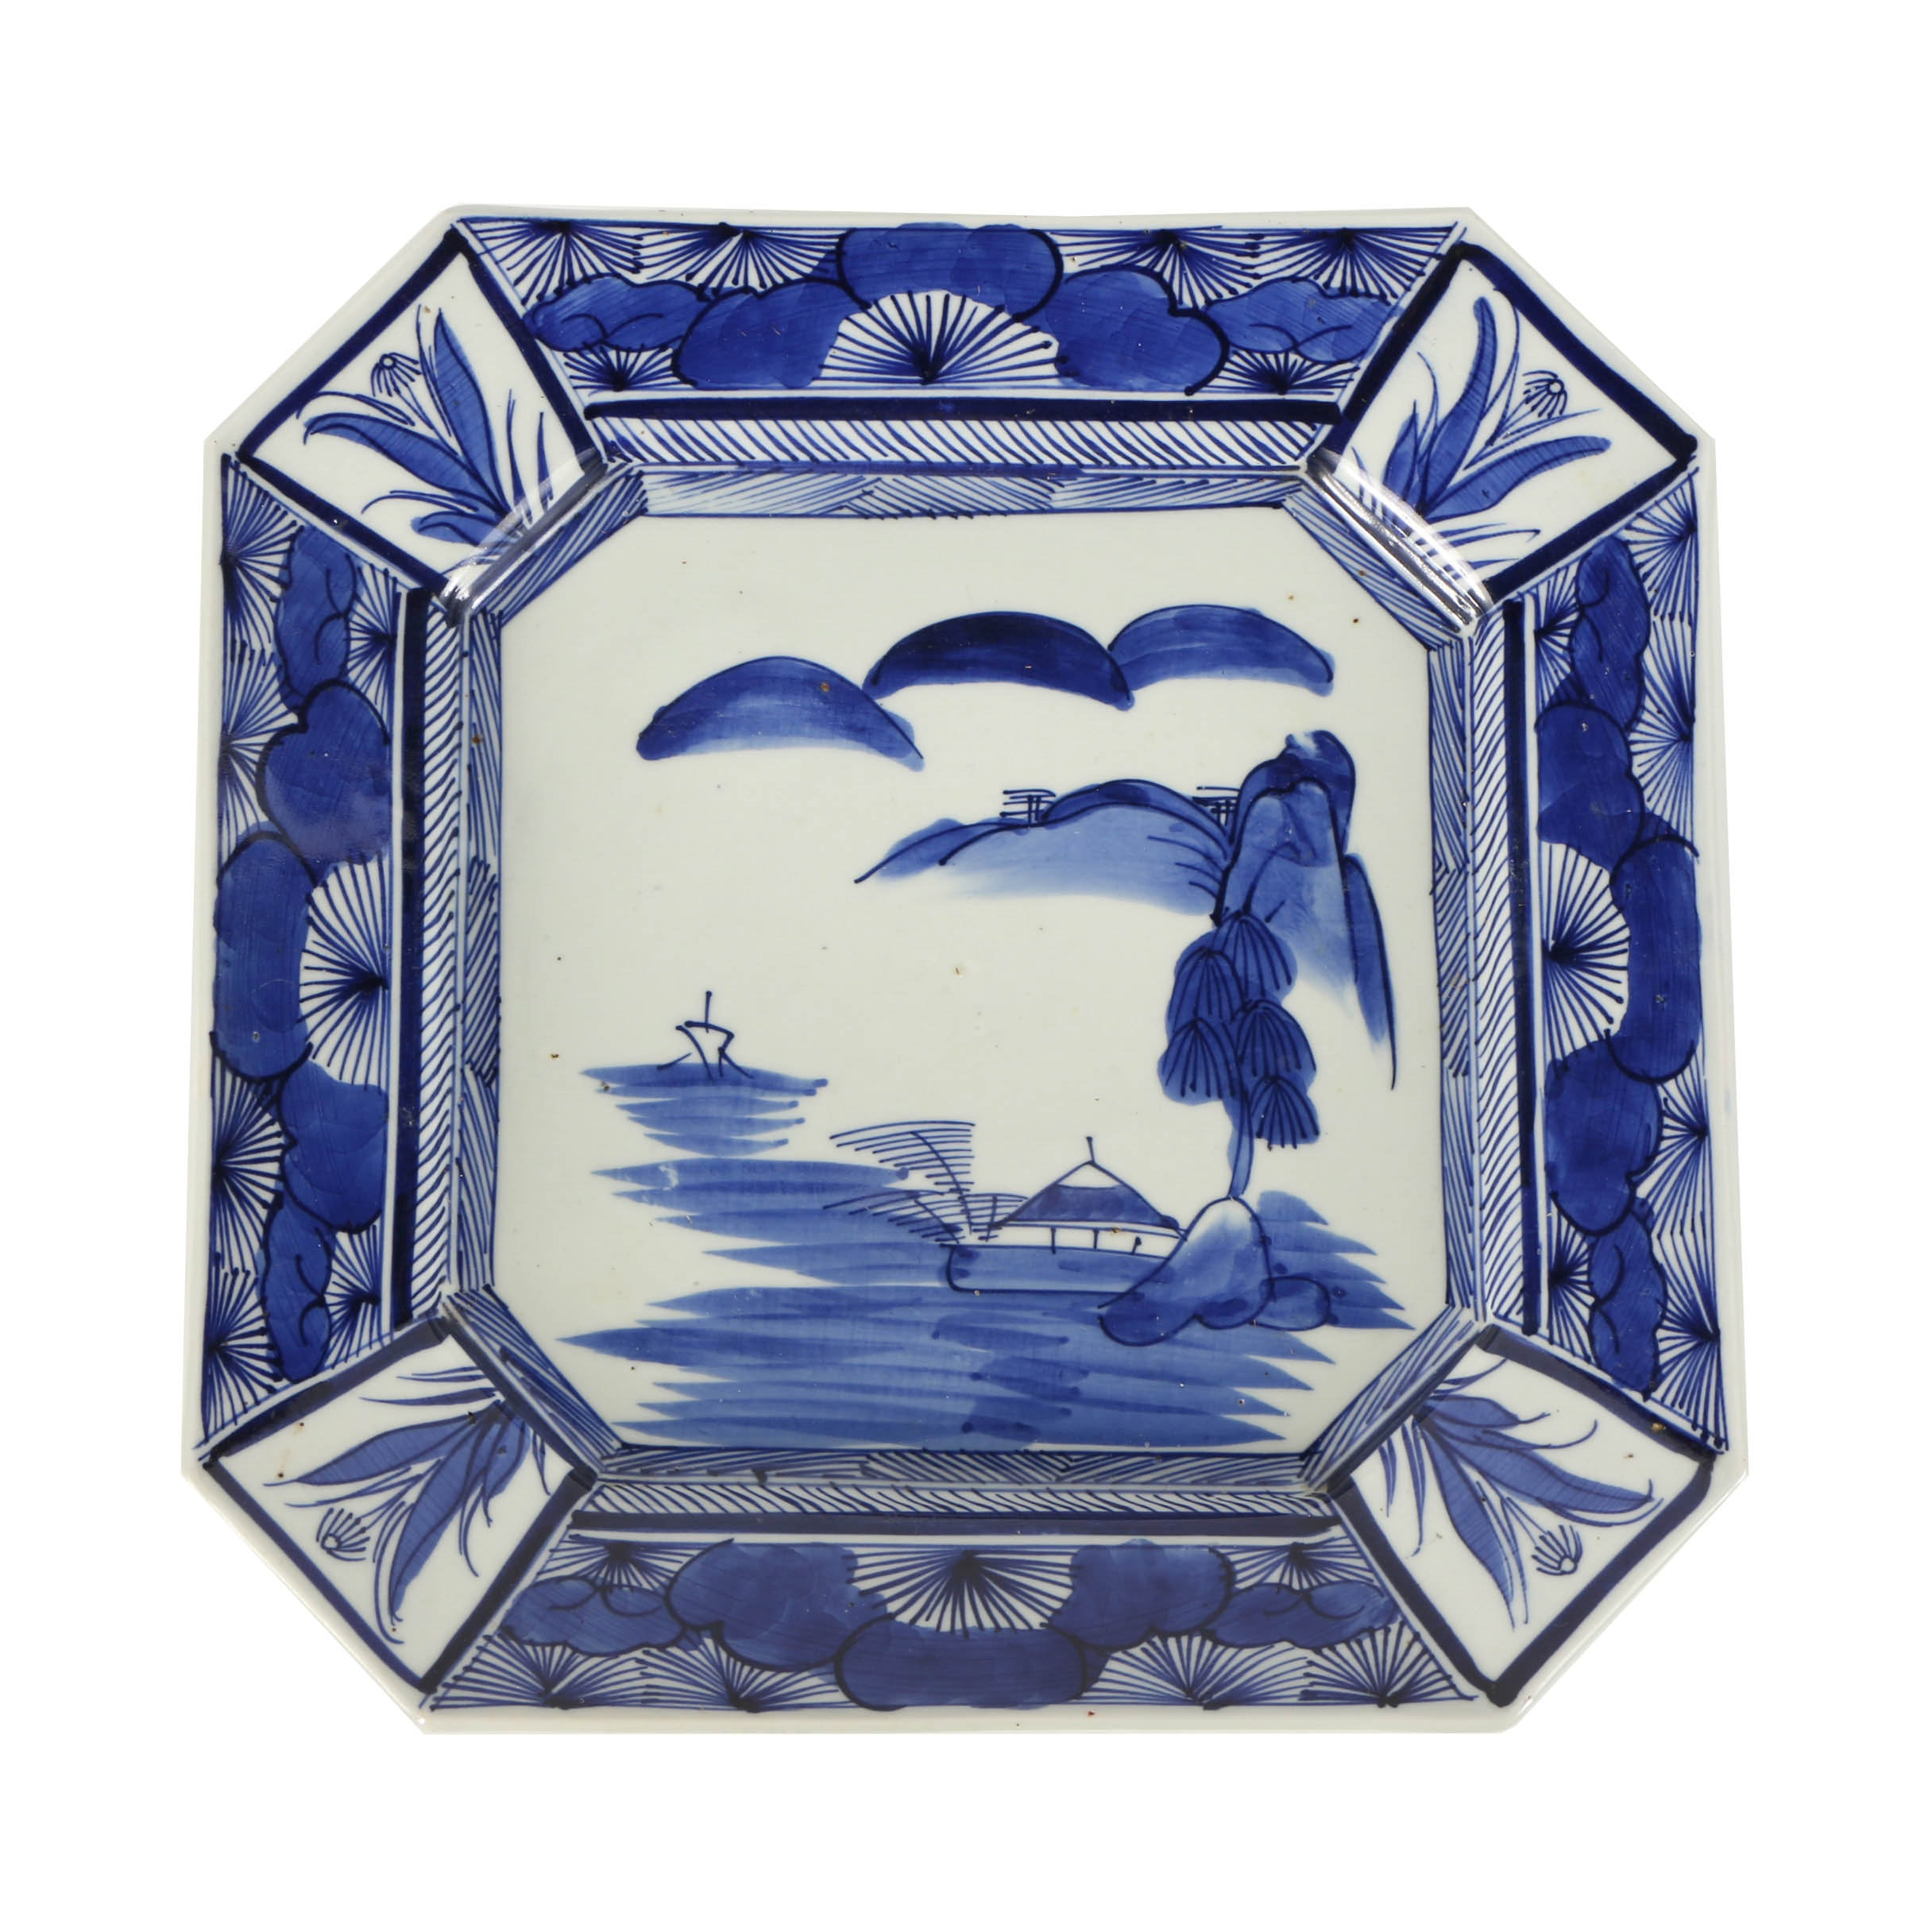 Japanese Decorative Porcelain Platter